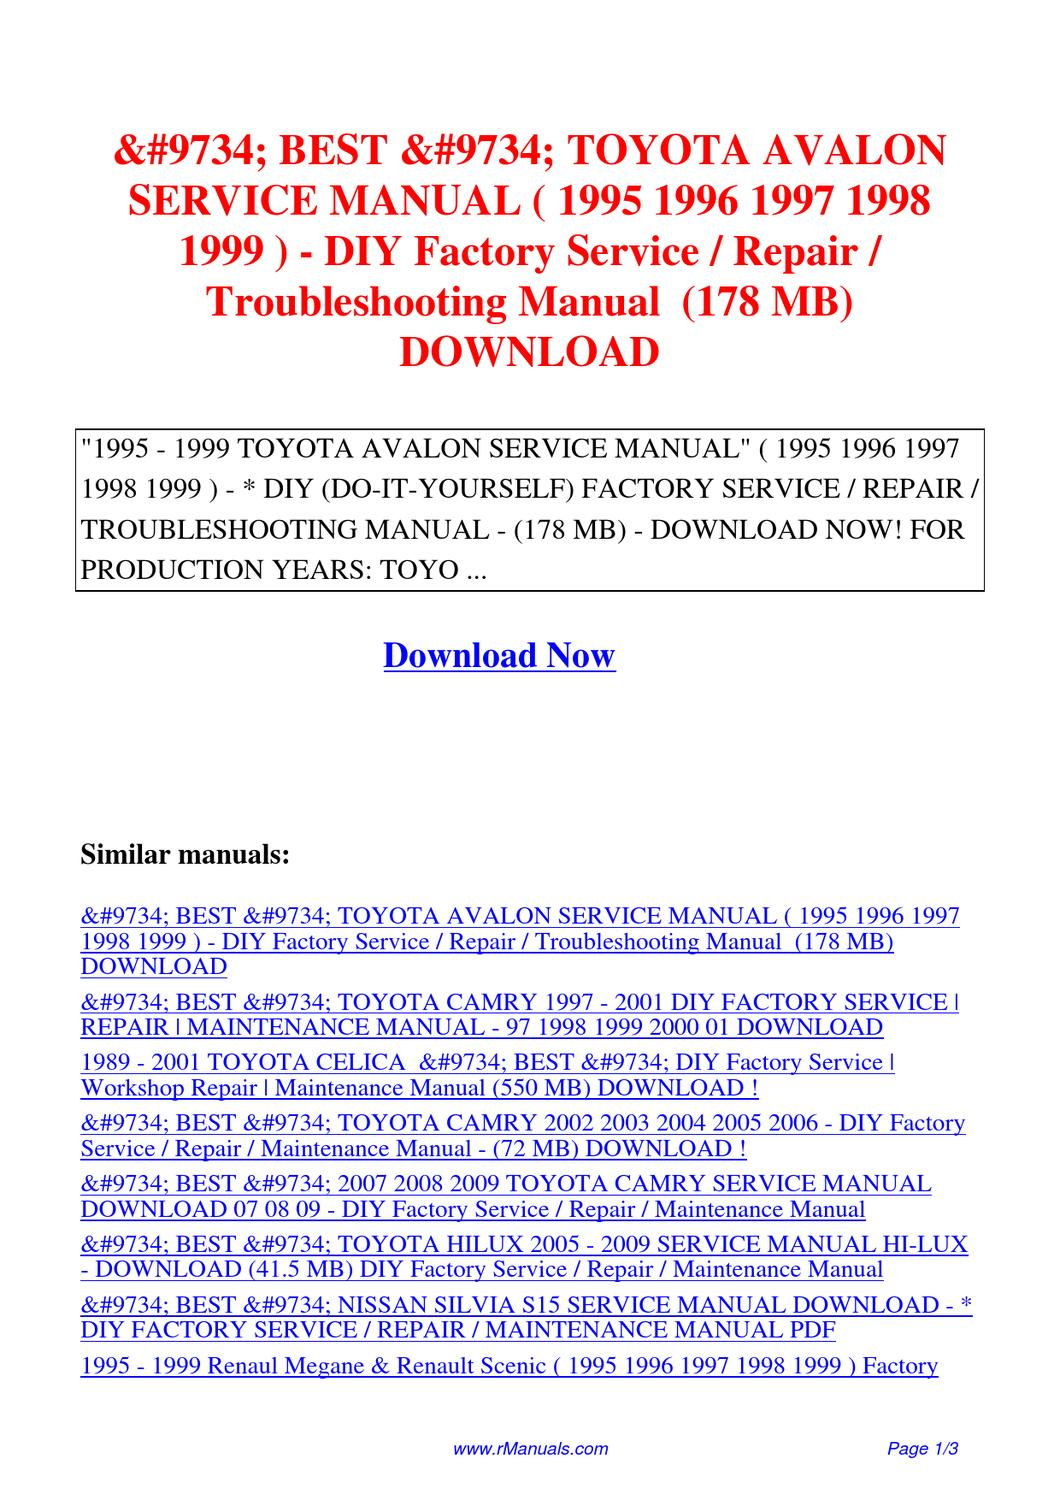 TOYOTA AVALON SERVICE MANUAL 1995 1996 1997 1998 1999-DIY Factory Service  Repair.pdf by David Zhang - issuu